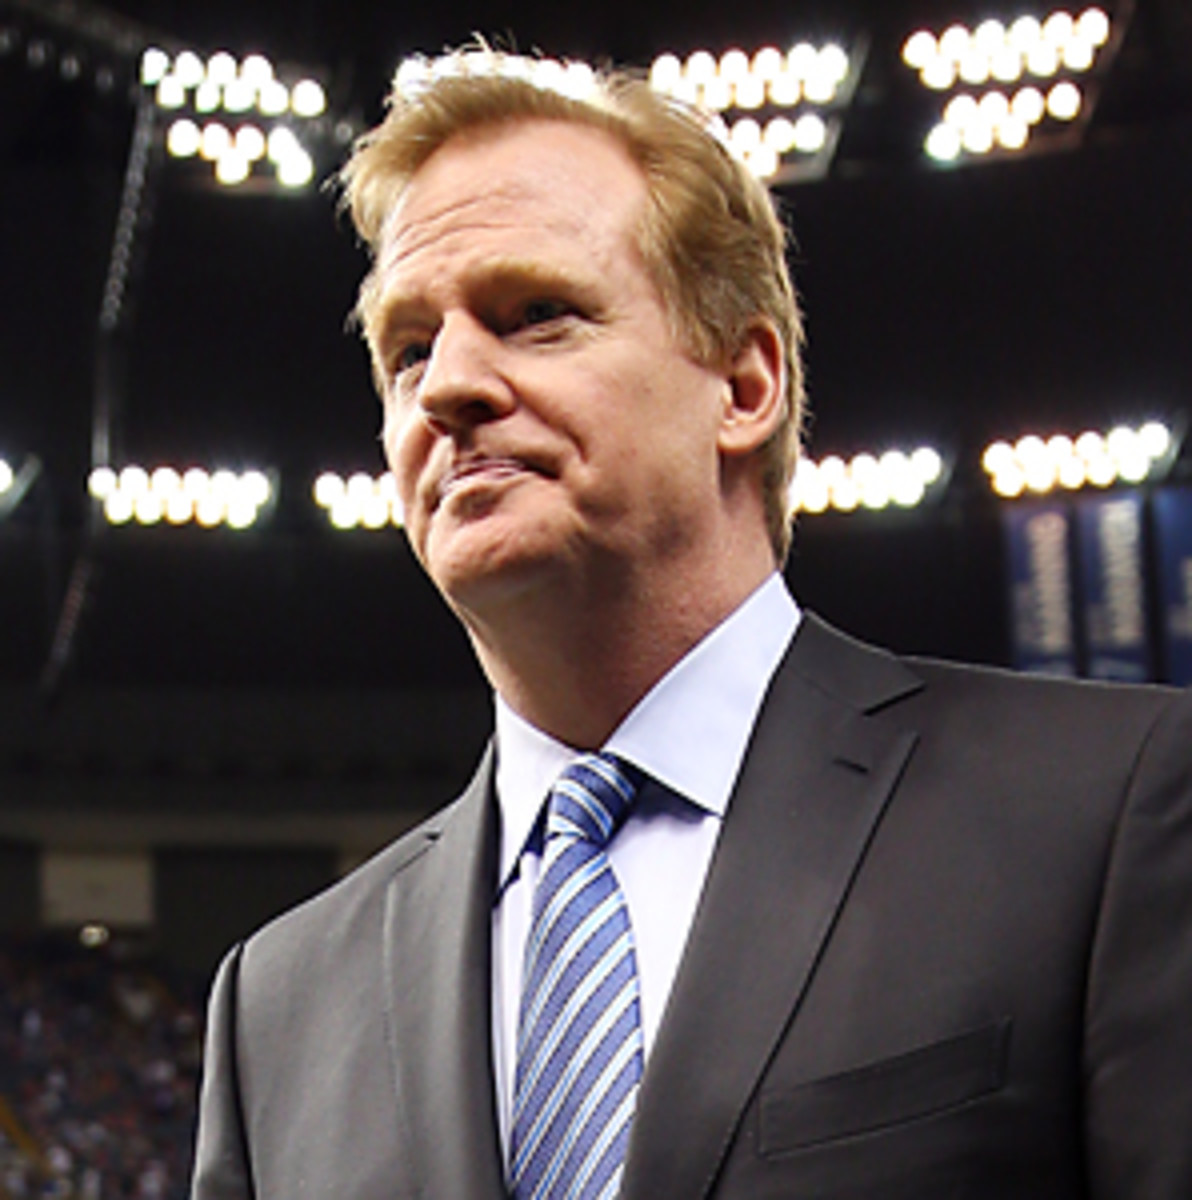 Roger Goodell saw his compensation from the NFL triple from 2011 to last year.